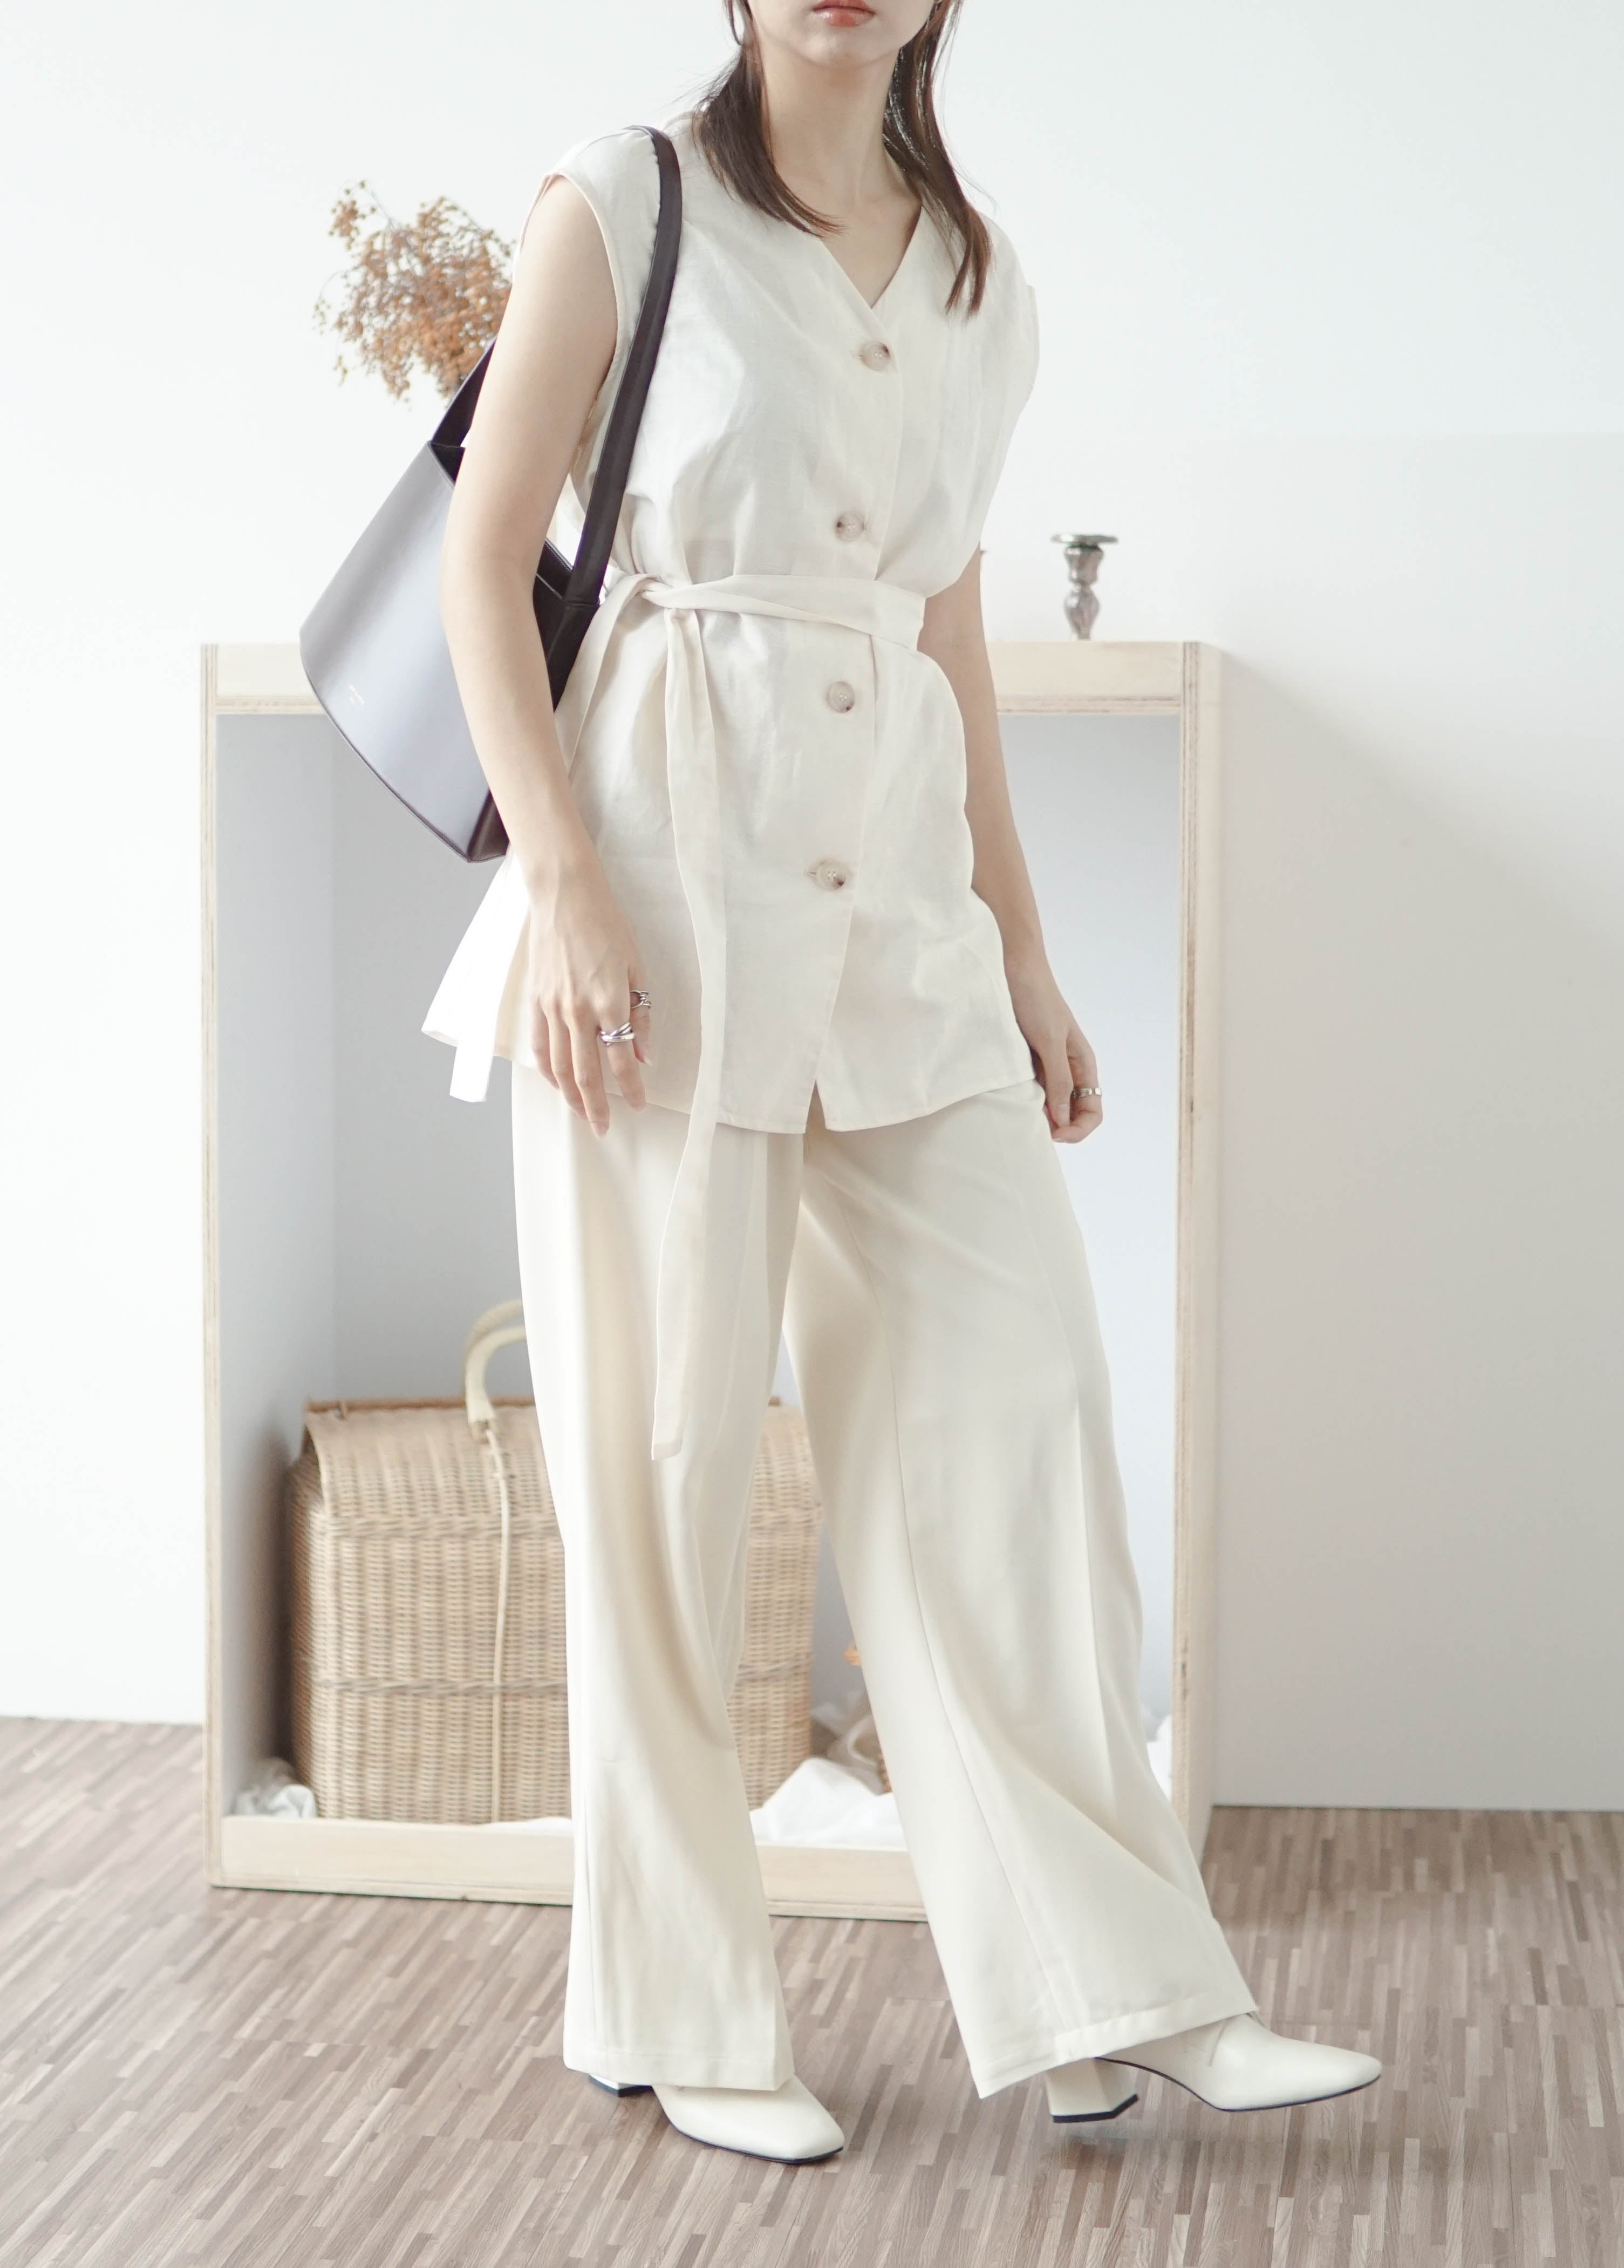 V-neck cotton and linen sleeveless lace-up cardigan in cream white